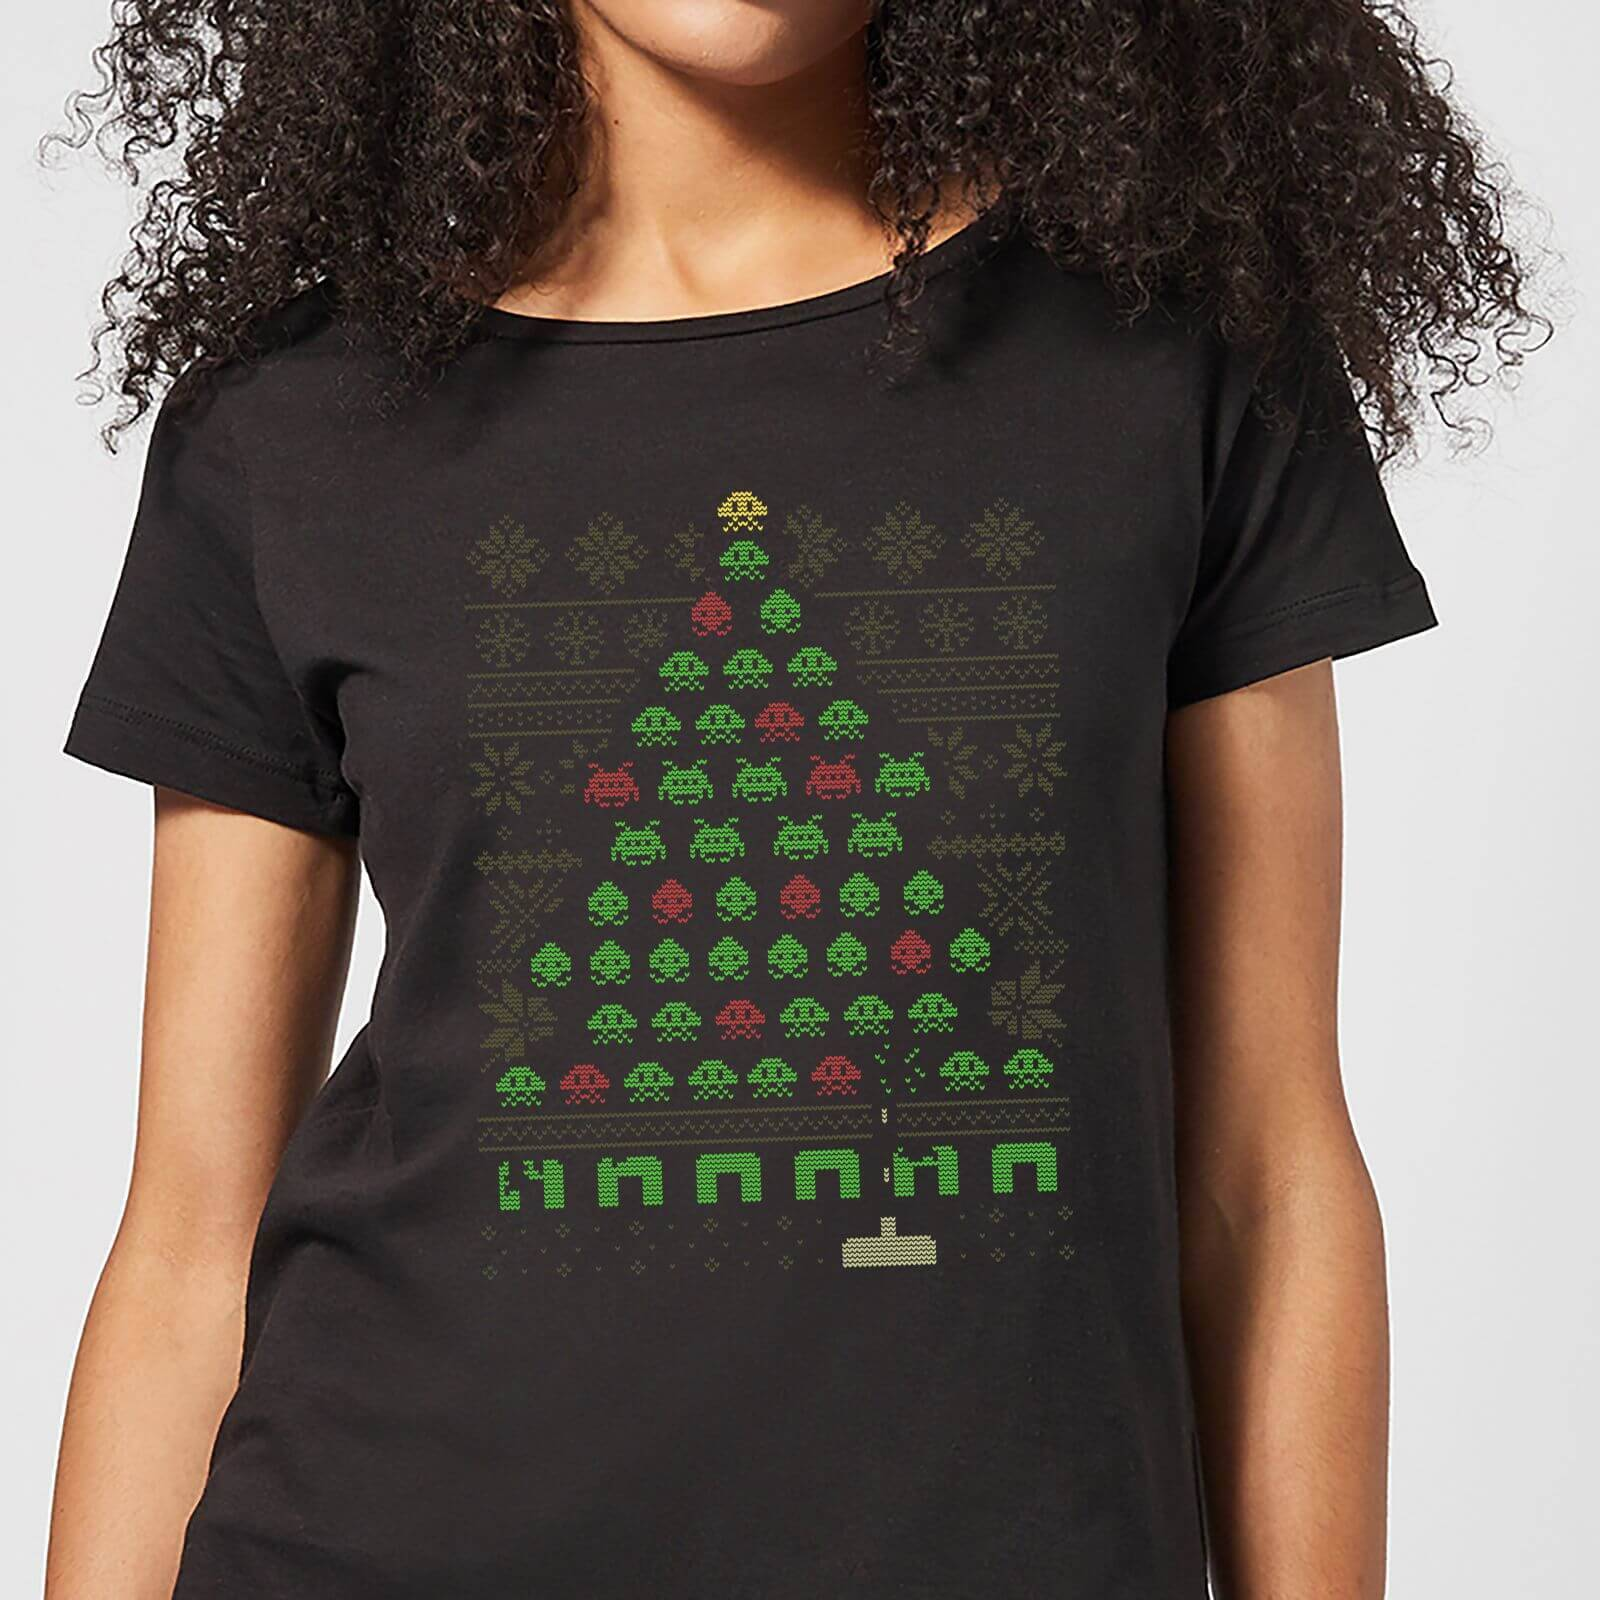 Geek Christmas Invaders From Space Women's T-Shirt - Black - L - Black